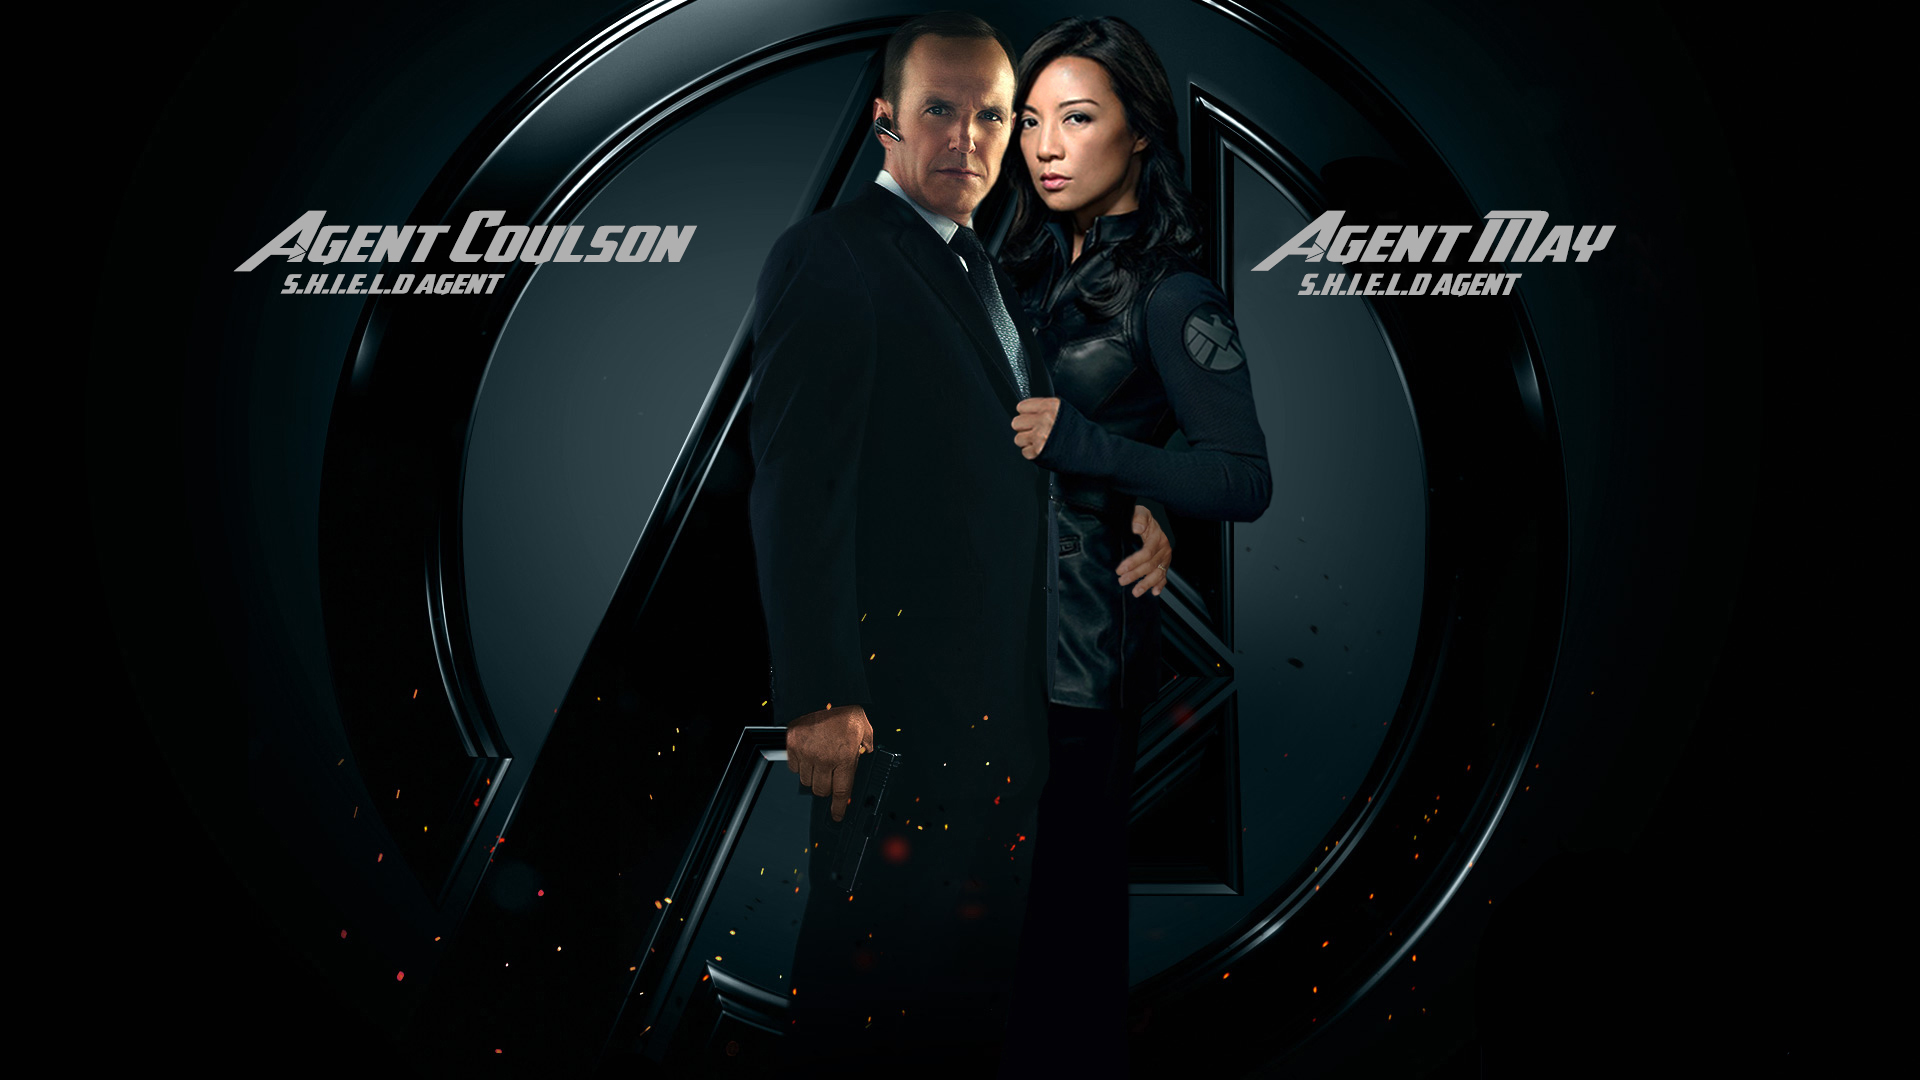 evorons-projects.net